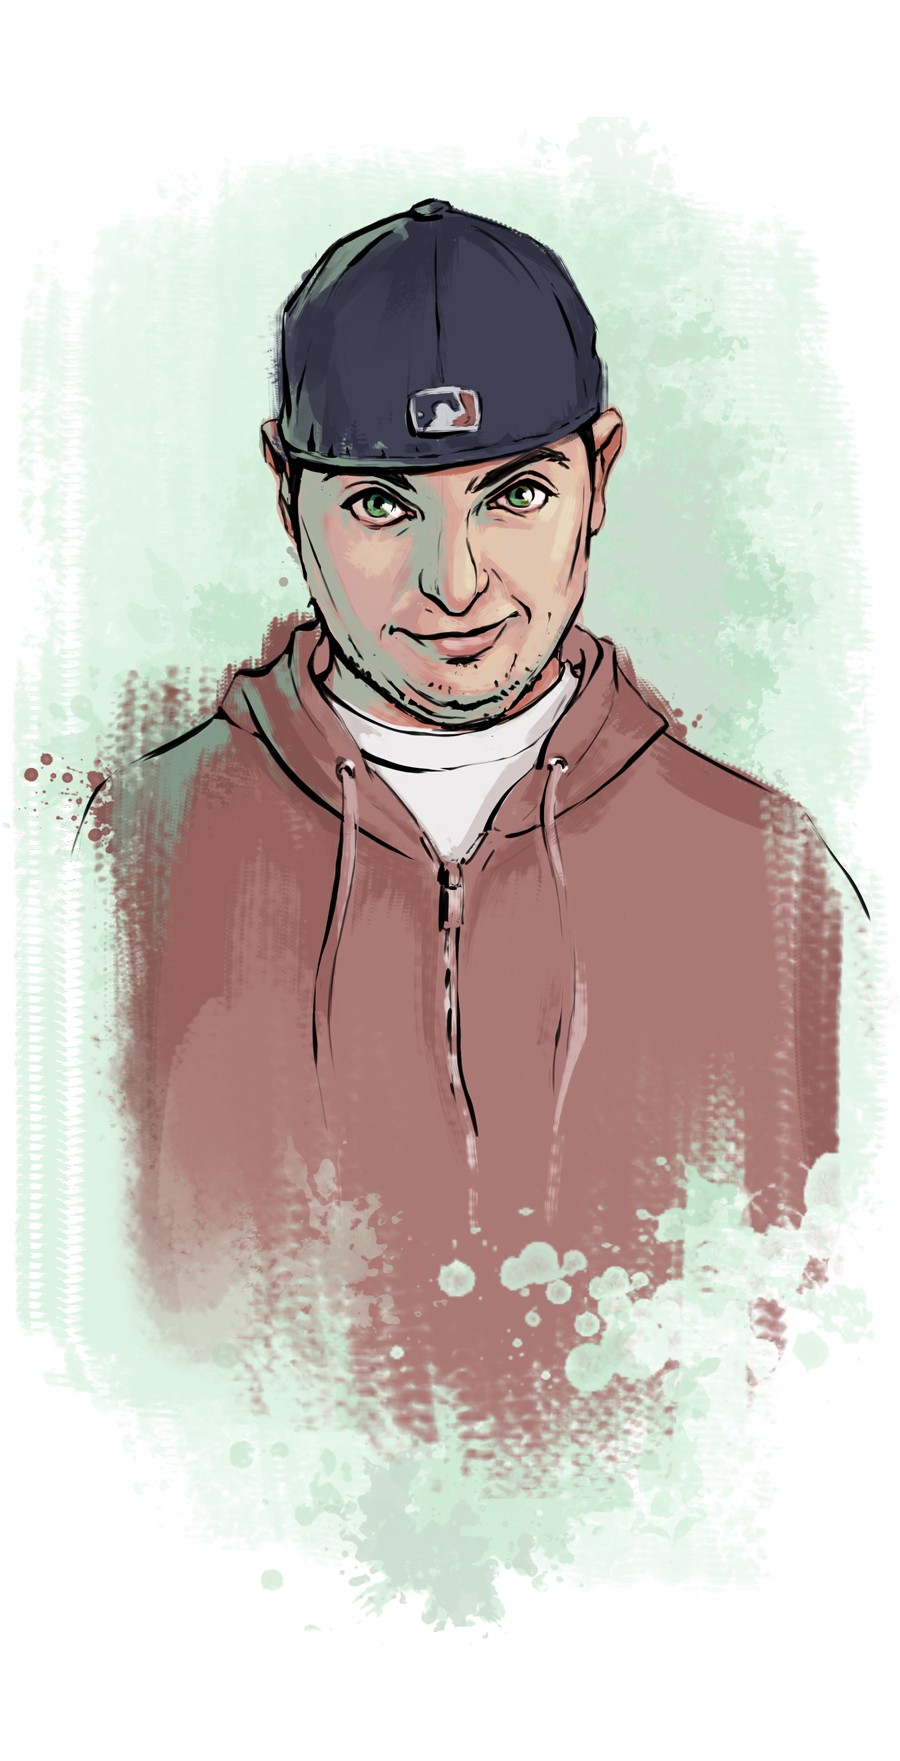 michael_portrait_900.png